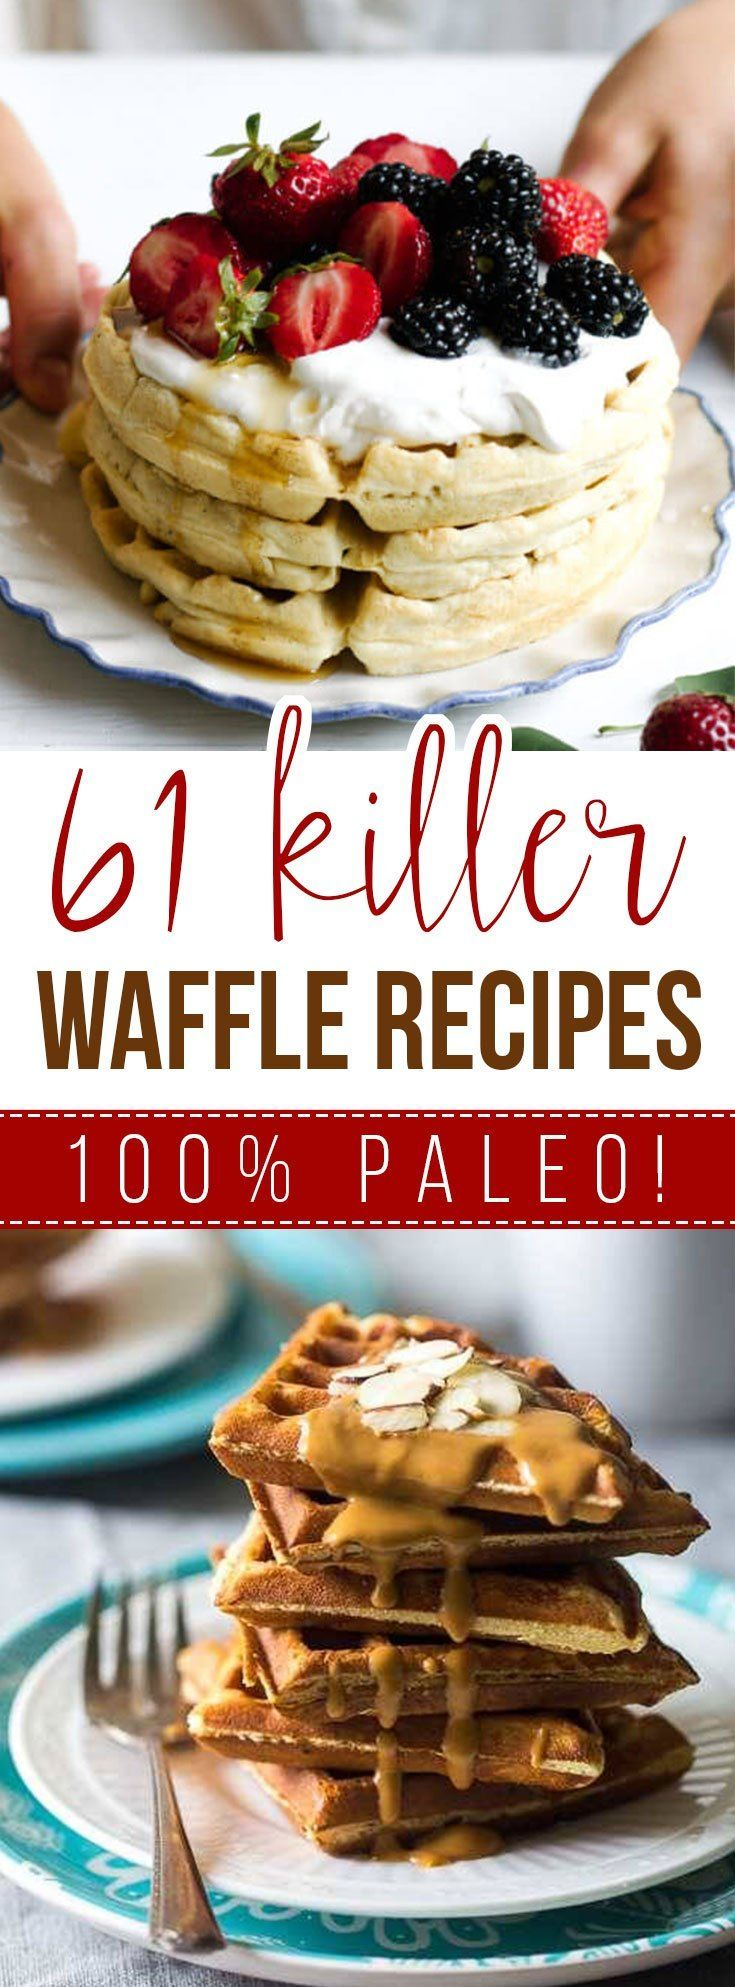 61 Killer Waffle Recipes (Paleo, Gluten Free, Dairy Free, Grain Free)